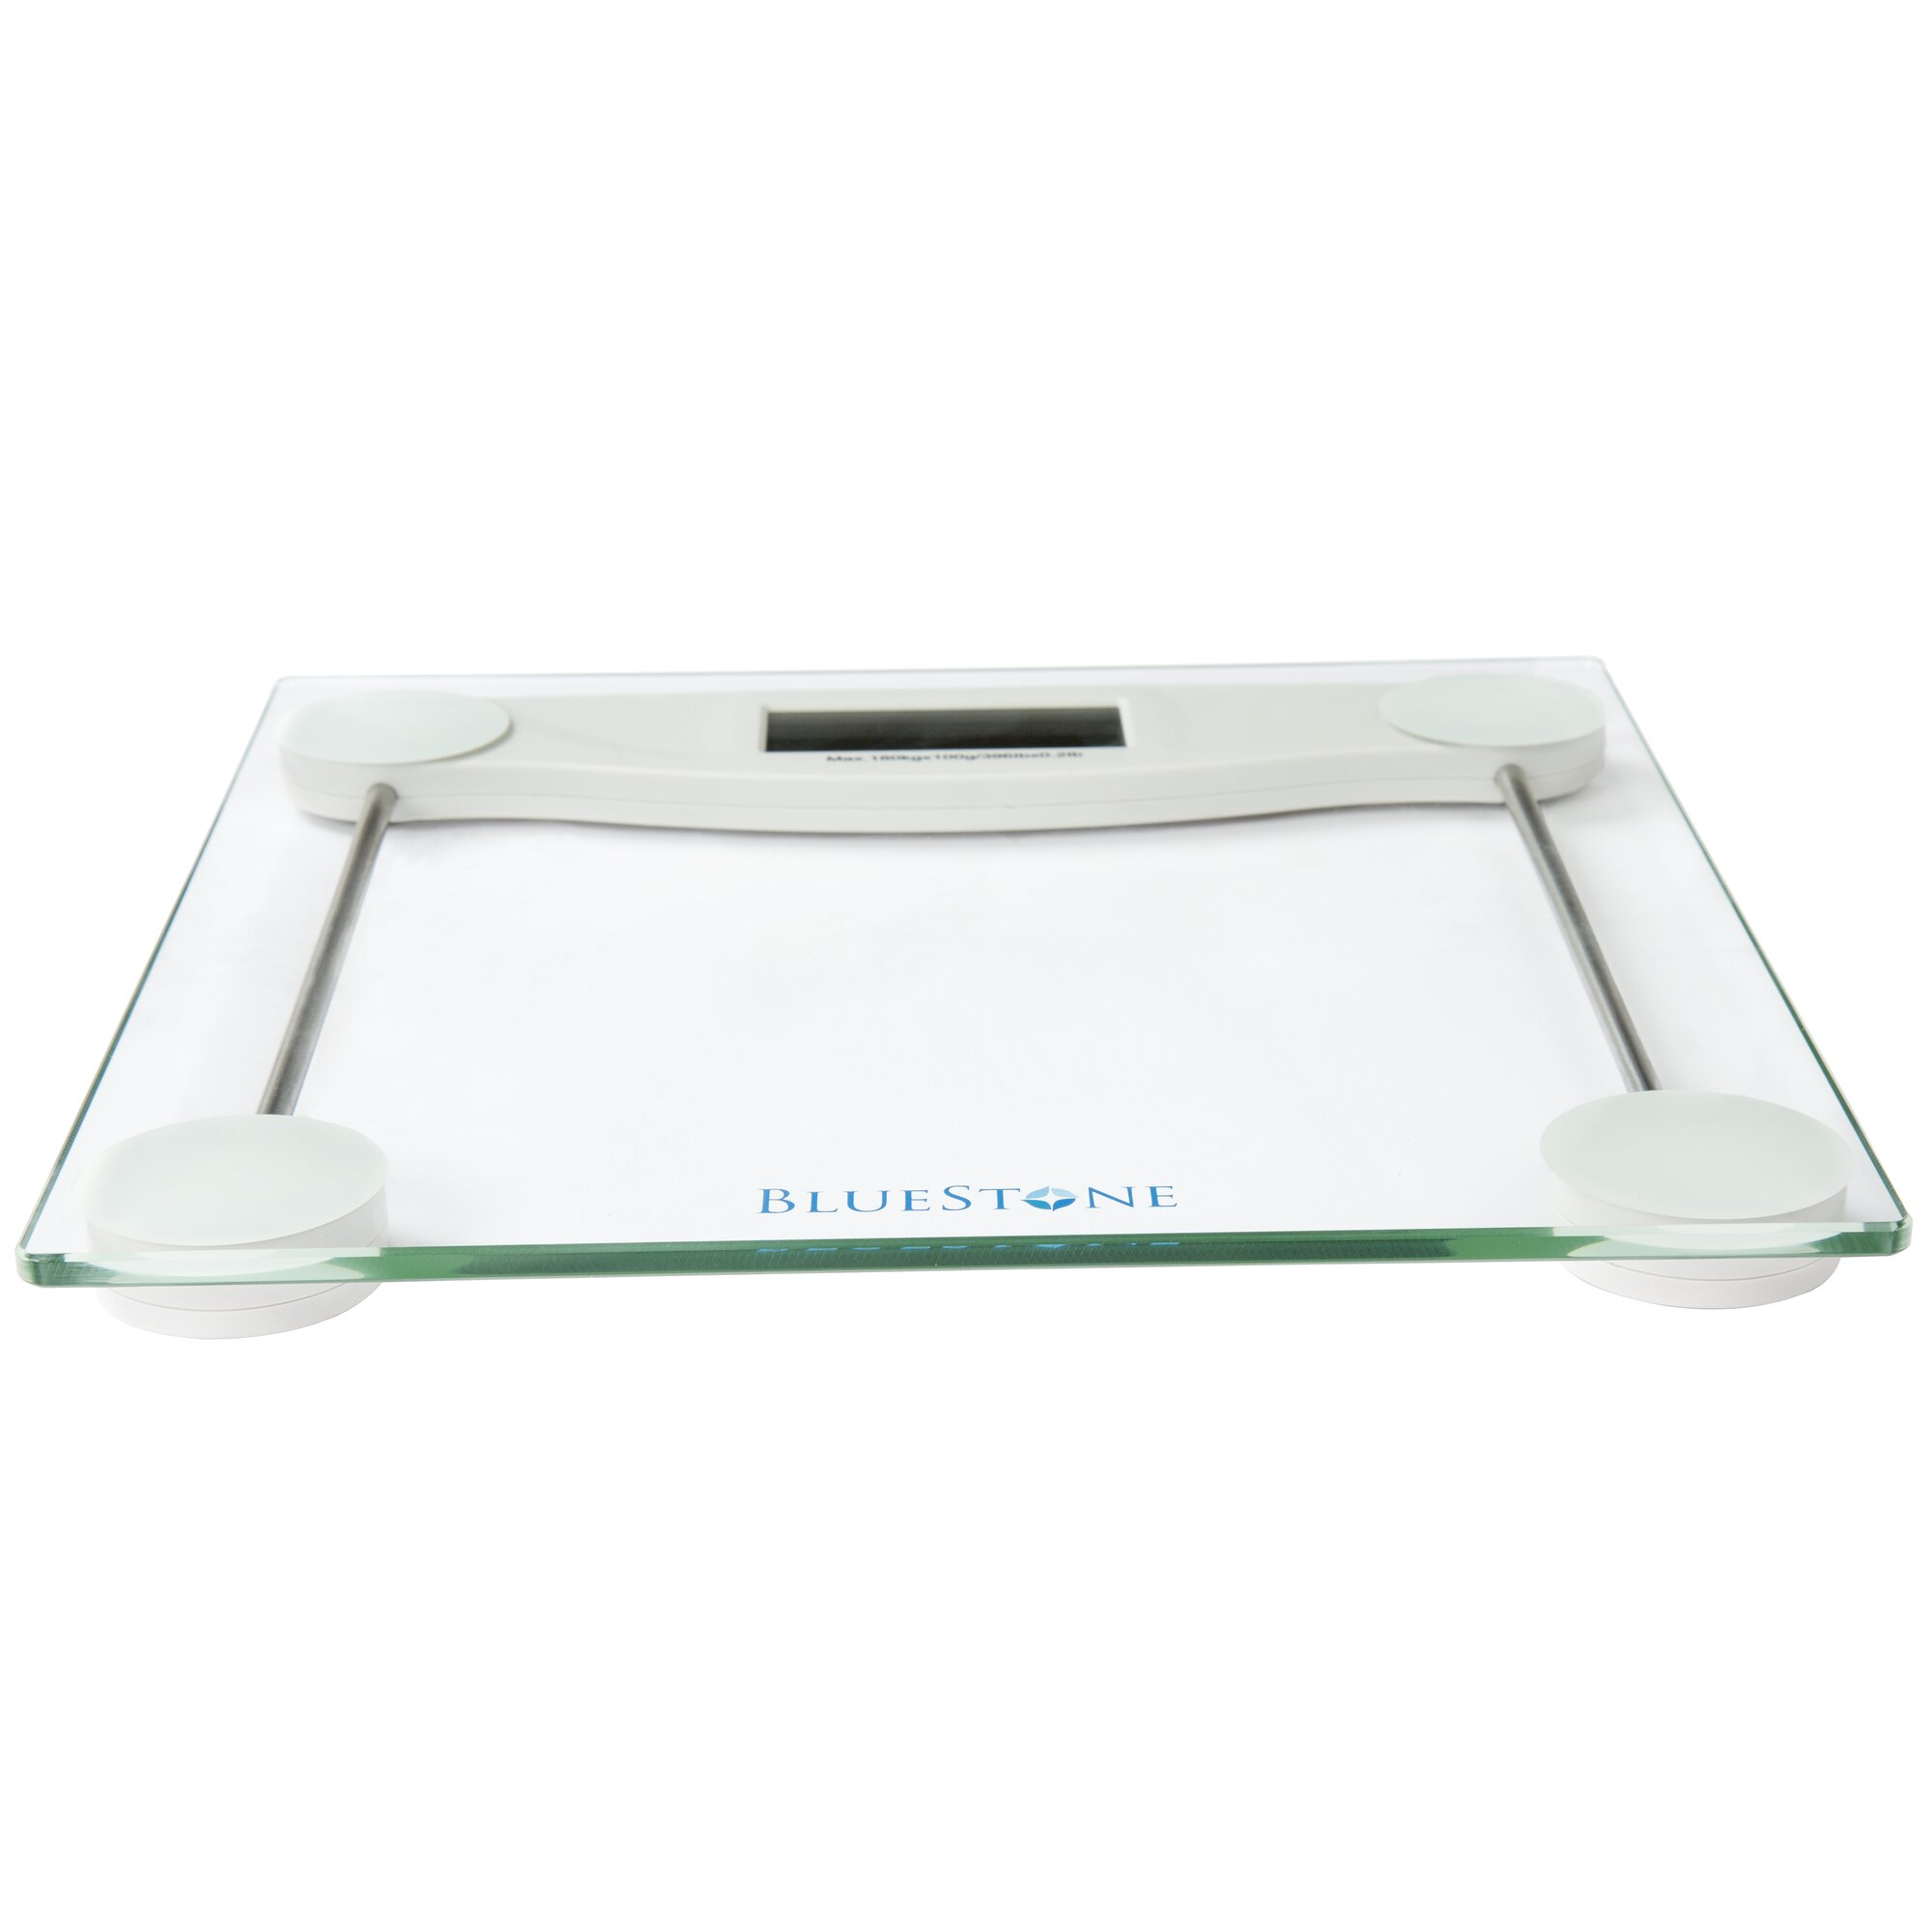 Glass bathroom scales - Digital Glass Bathroom Scale With Lcd Display